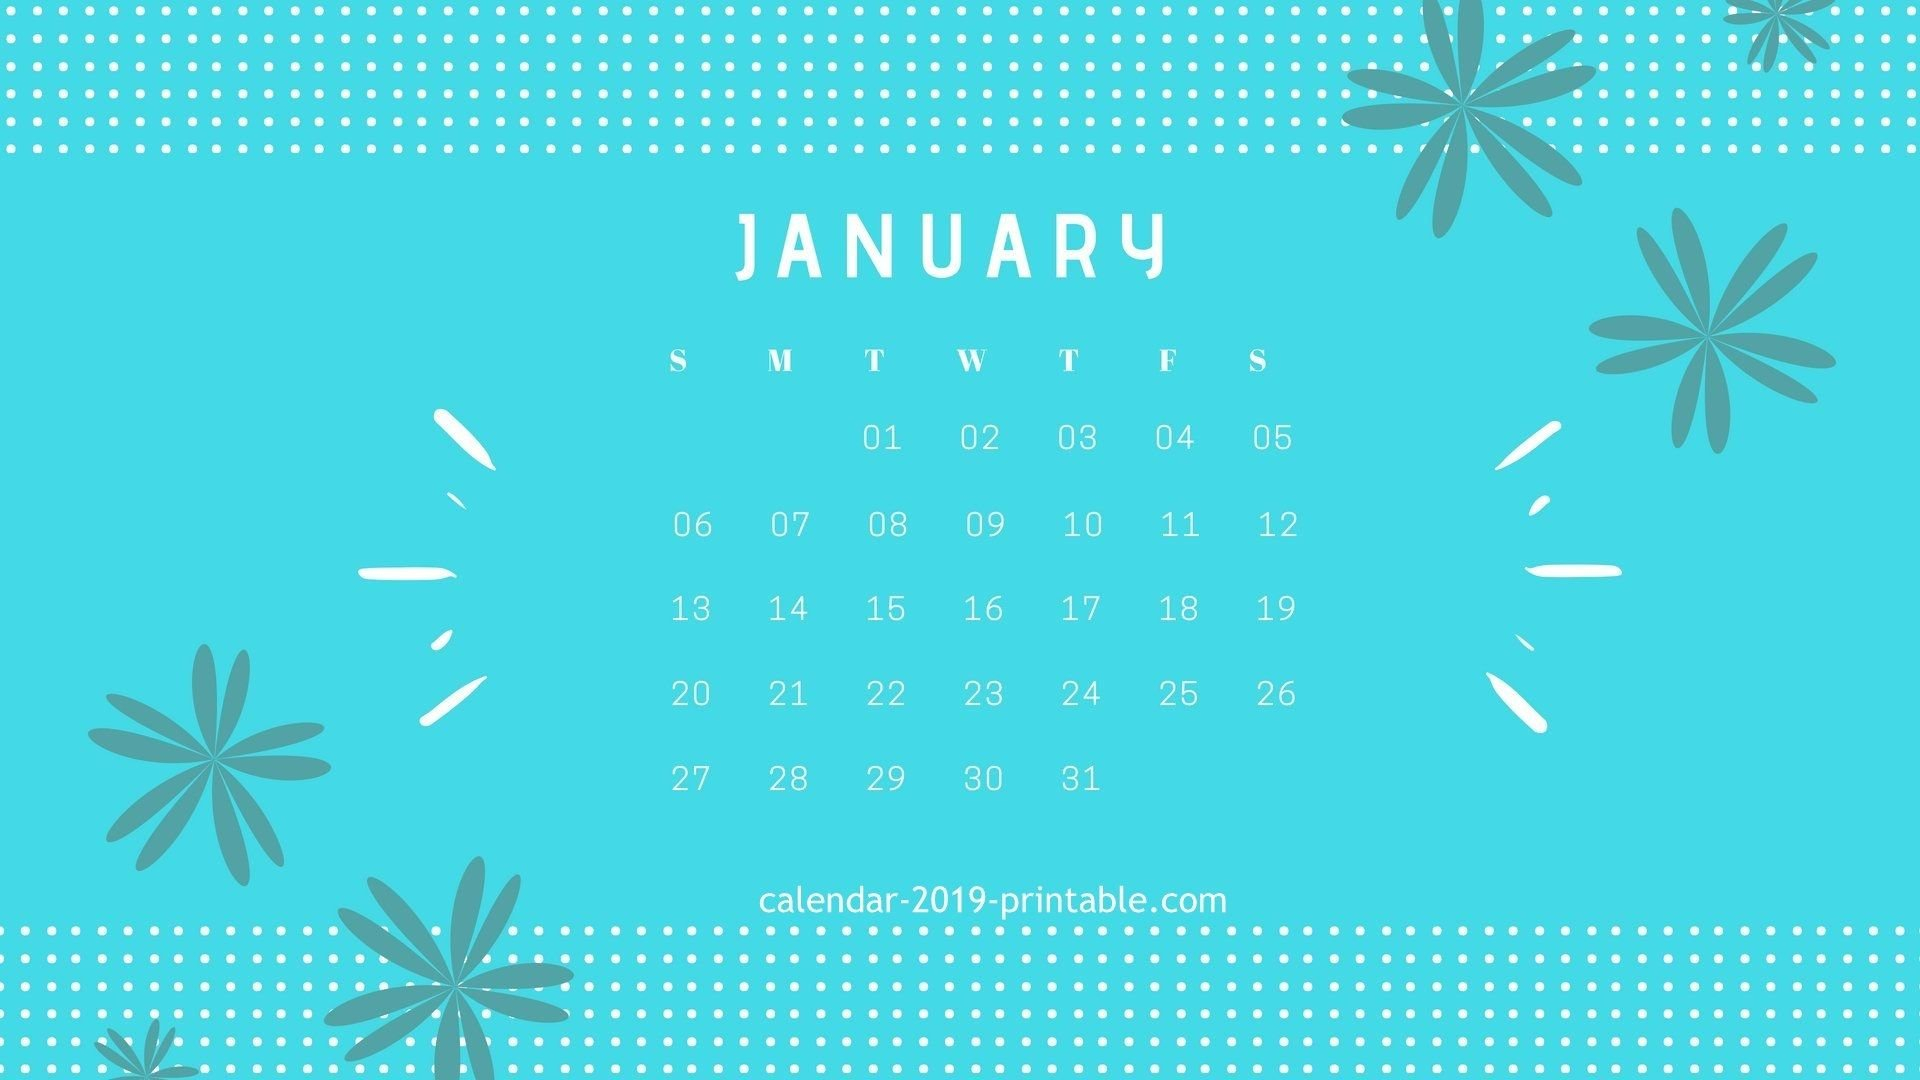 January 2019 Calendar Desktop Wallpapers Calendar 2019 Calendar 2019 On Computer